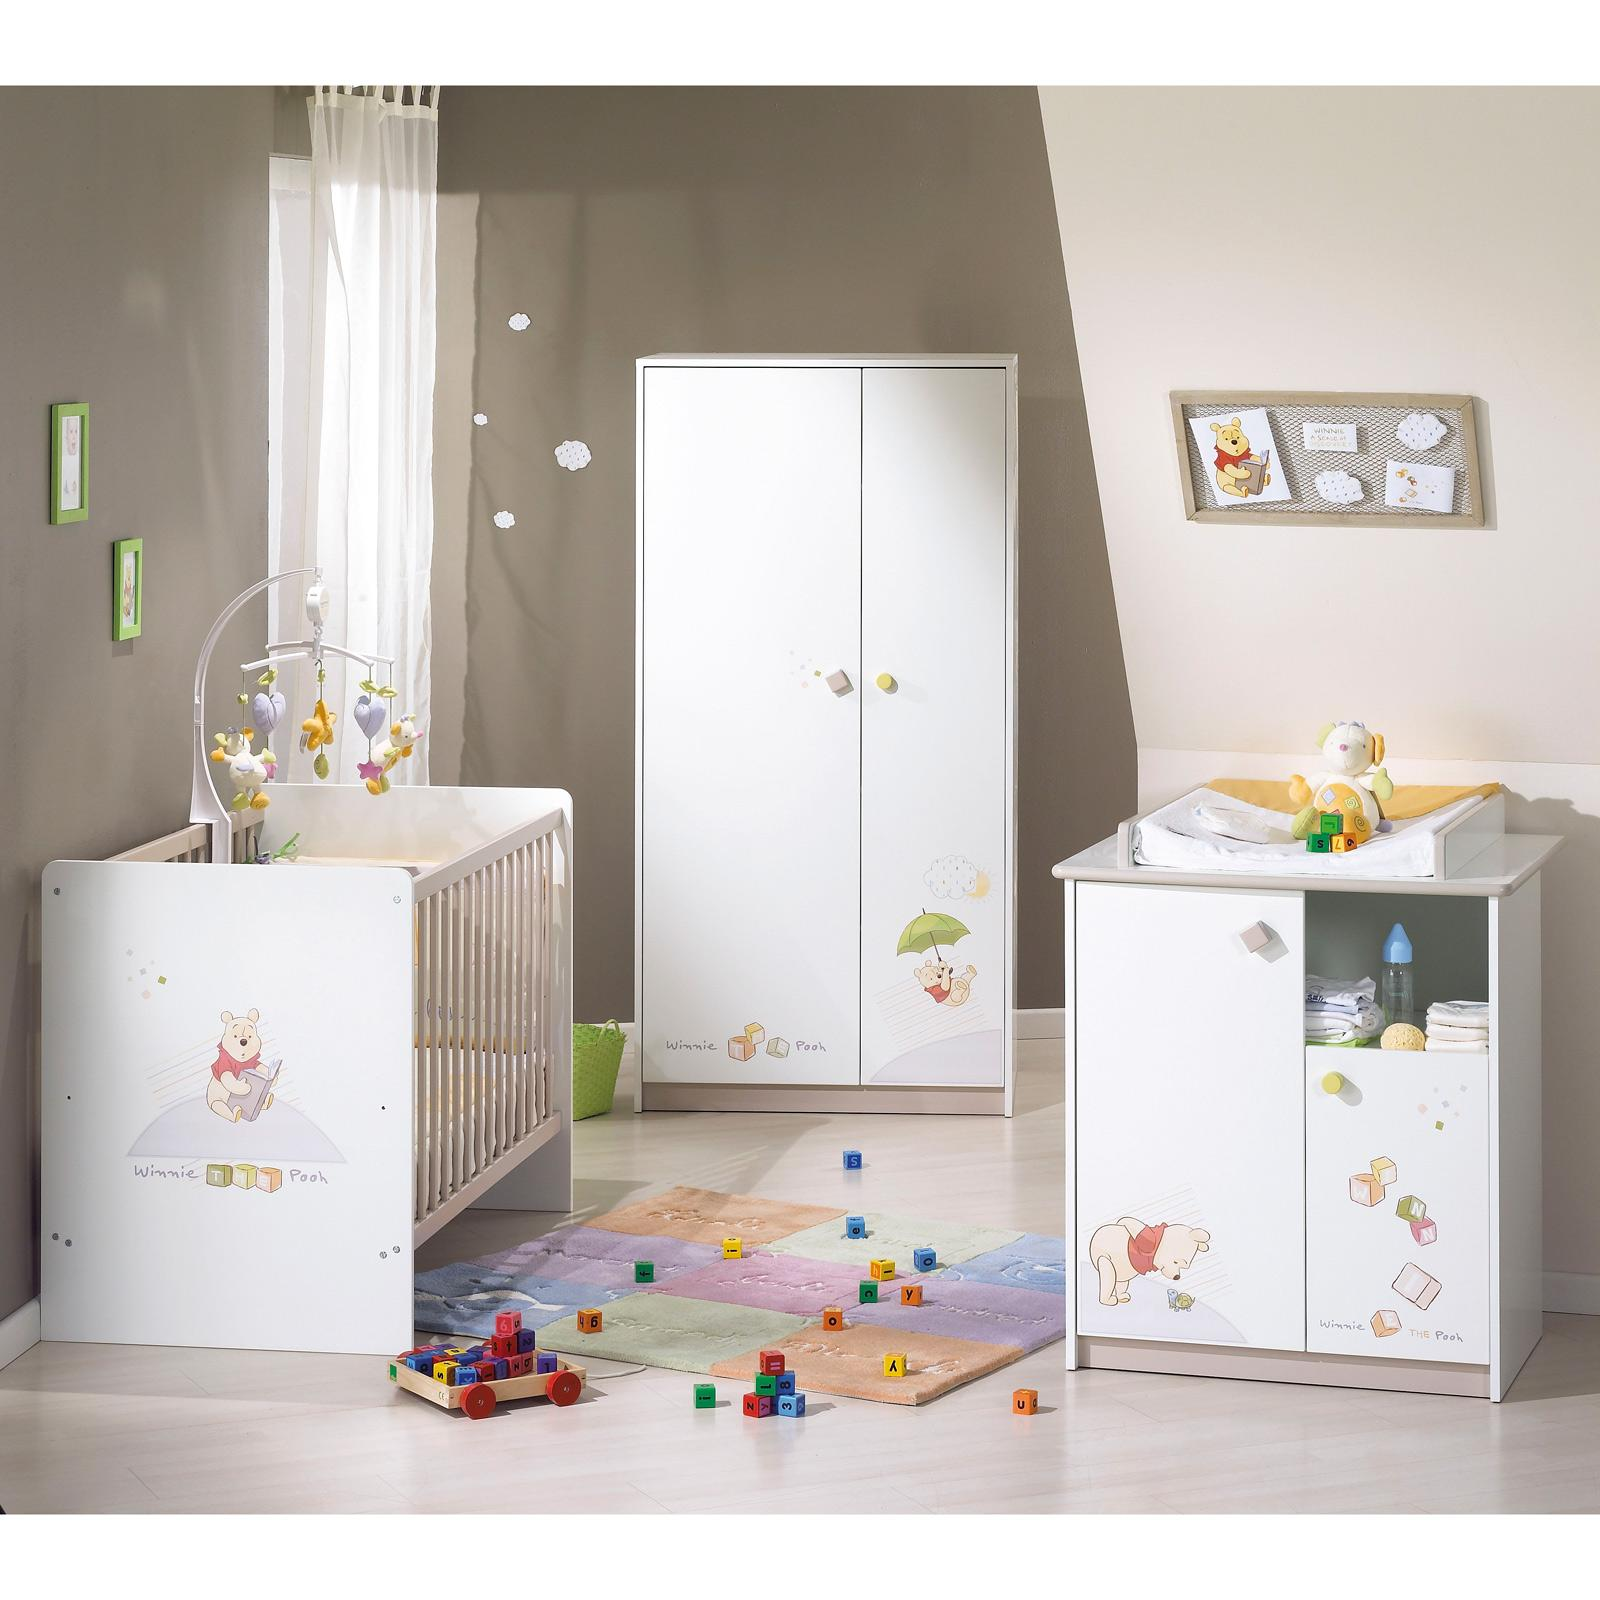 Deco chambre bebe fille winnie for Photo decoration chambre bebe fille